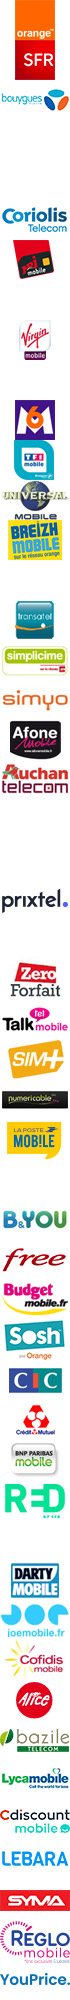 forfait SFR Carr� Tablette et Cl� 3 Go (version �co) 3 Go. Sans engagement